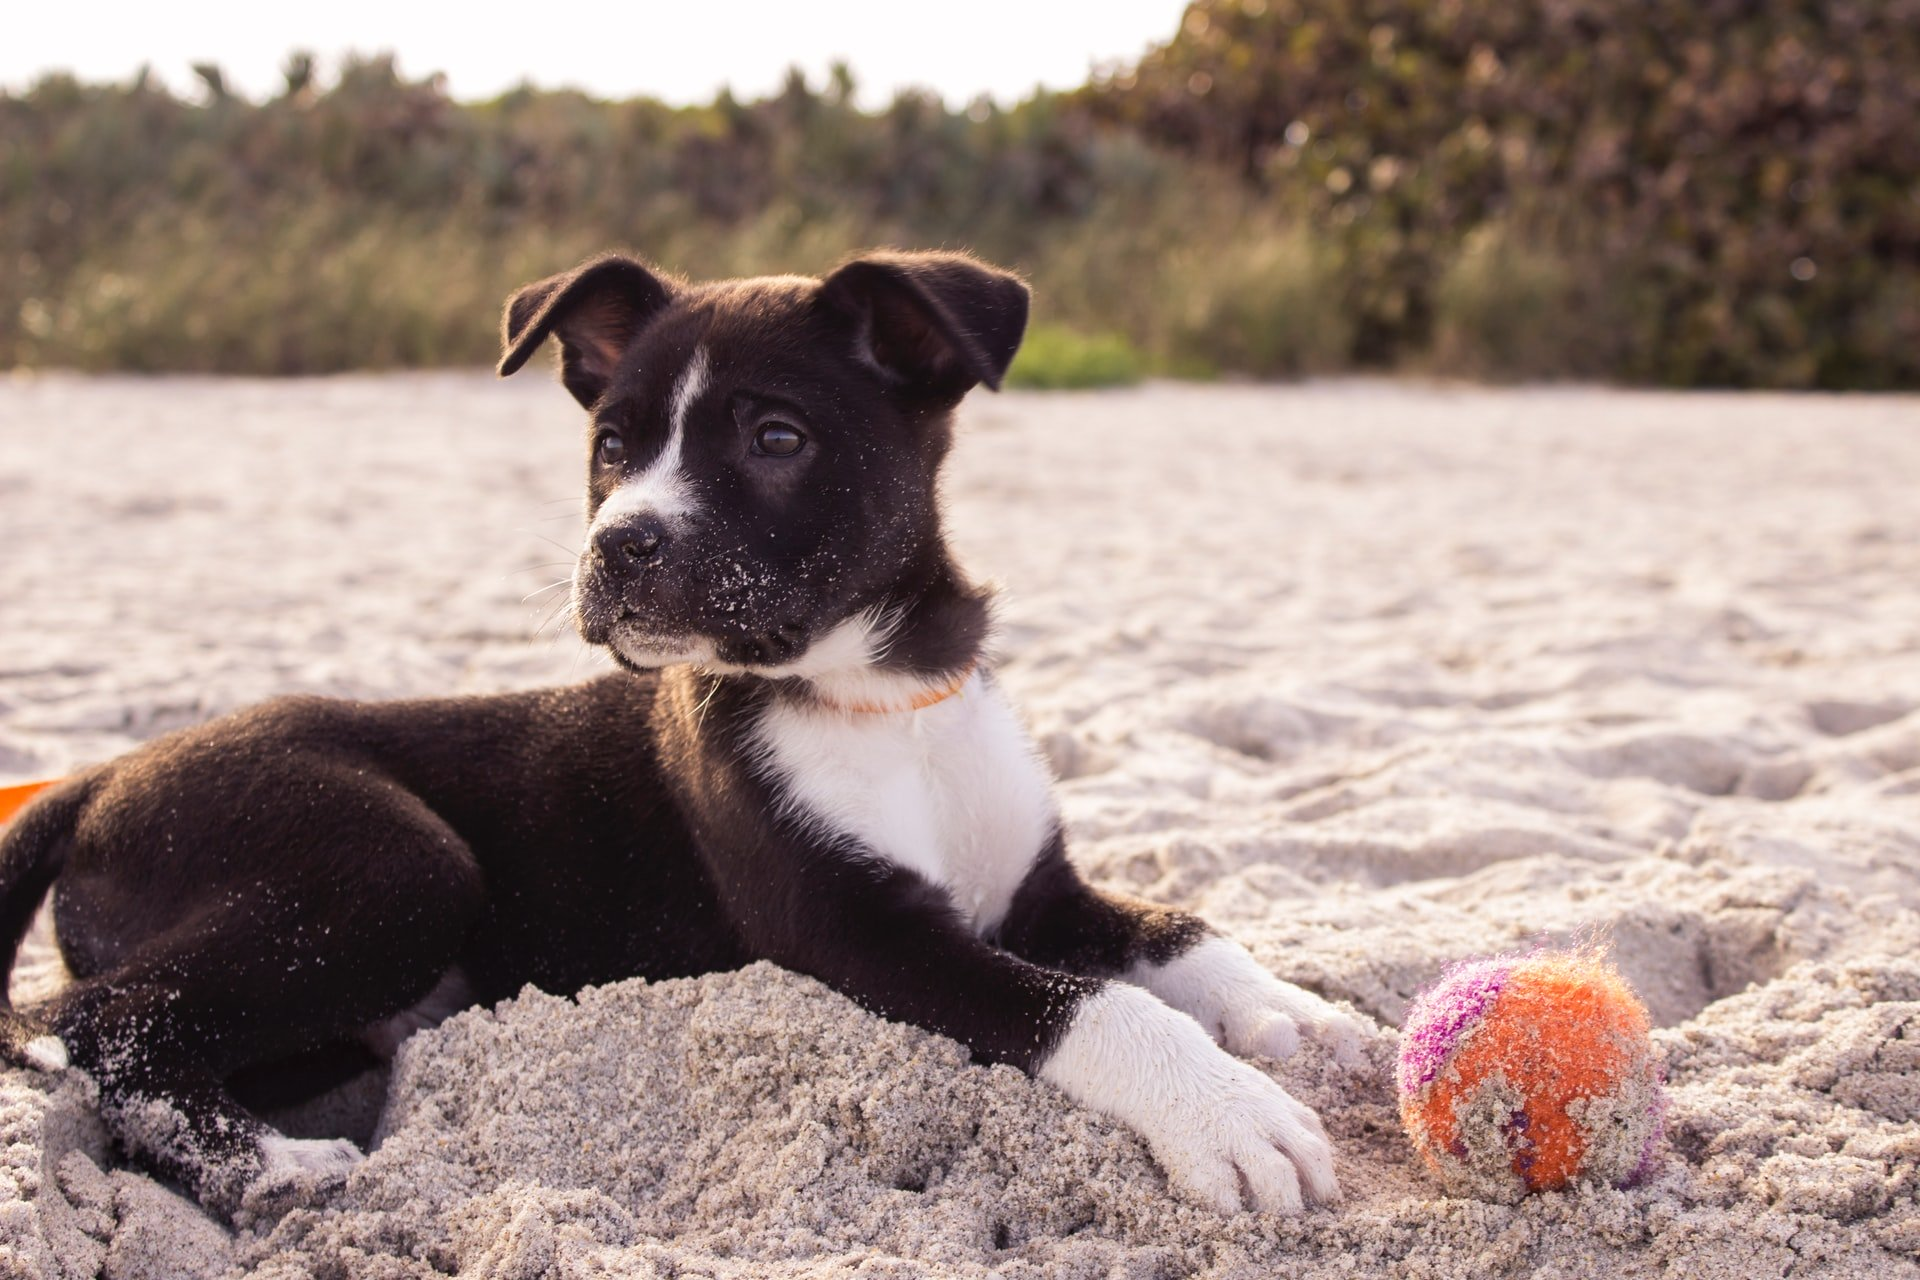 black and white coated puppy